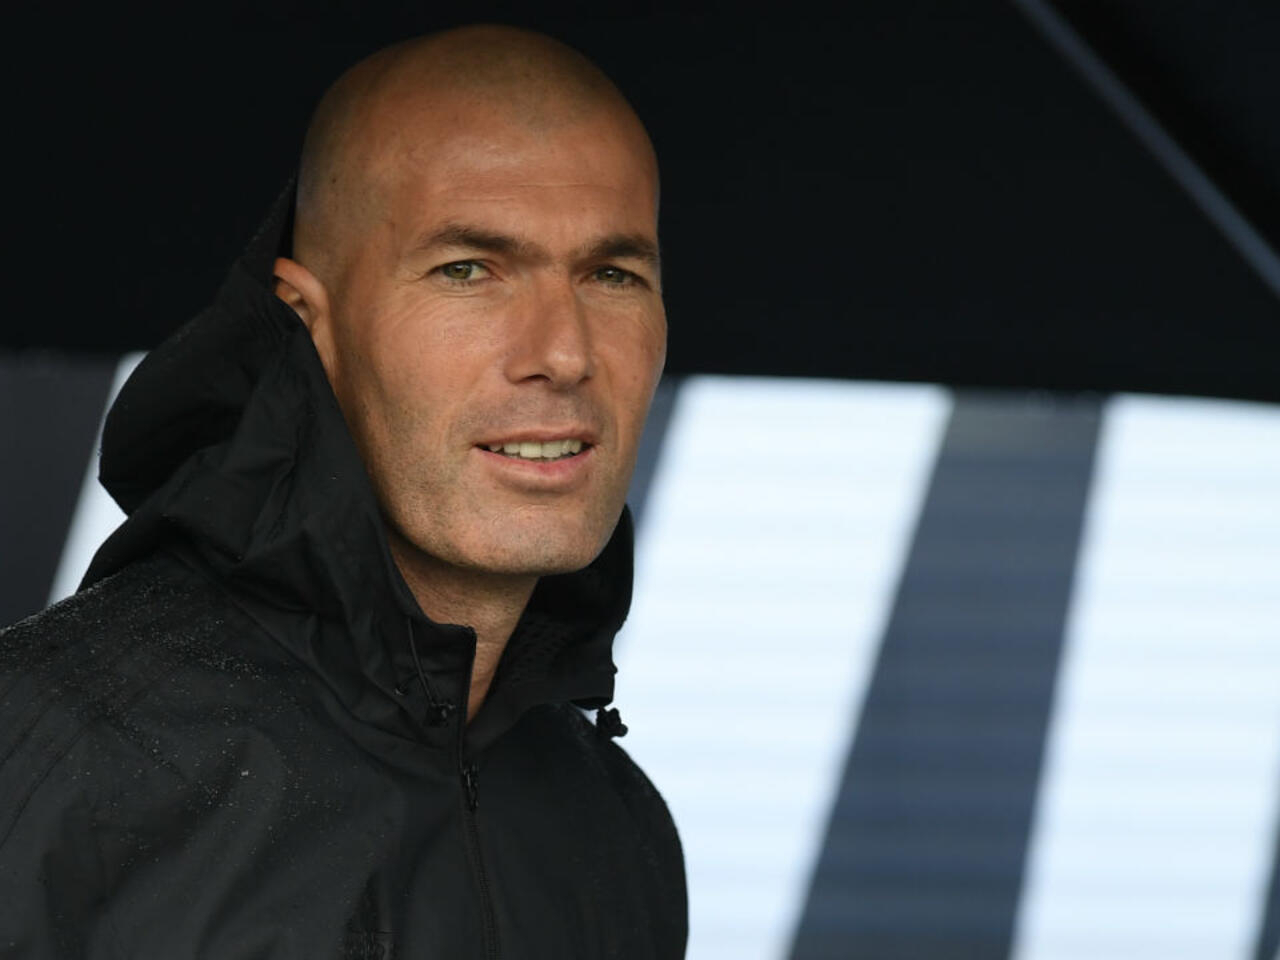 French football legend Zinedine Zidane returns as manager of Real Madrid